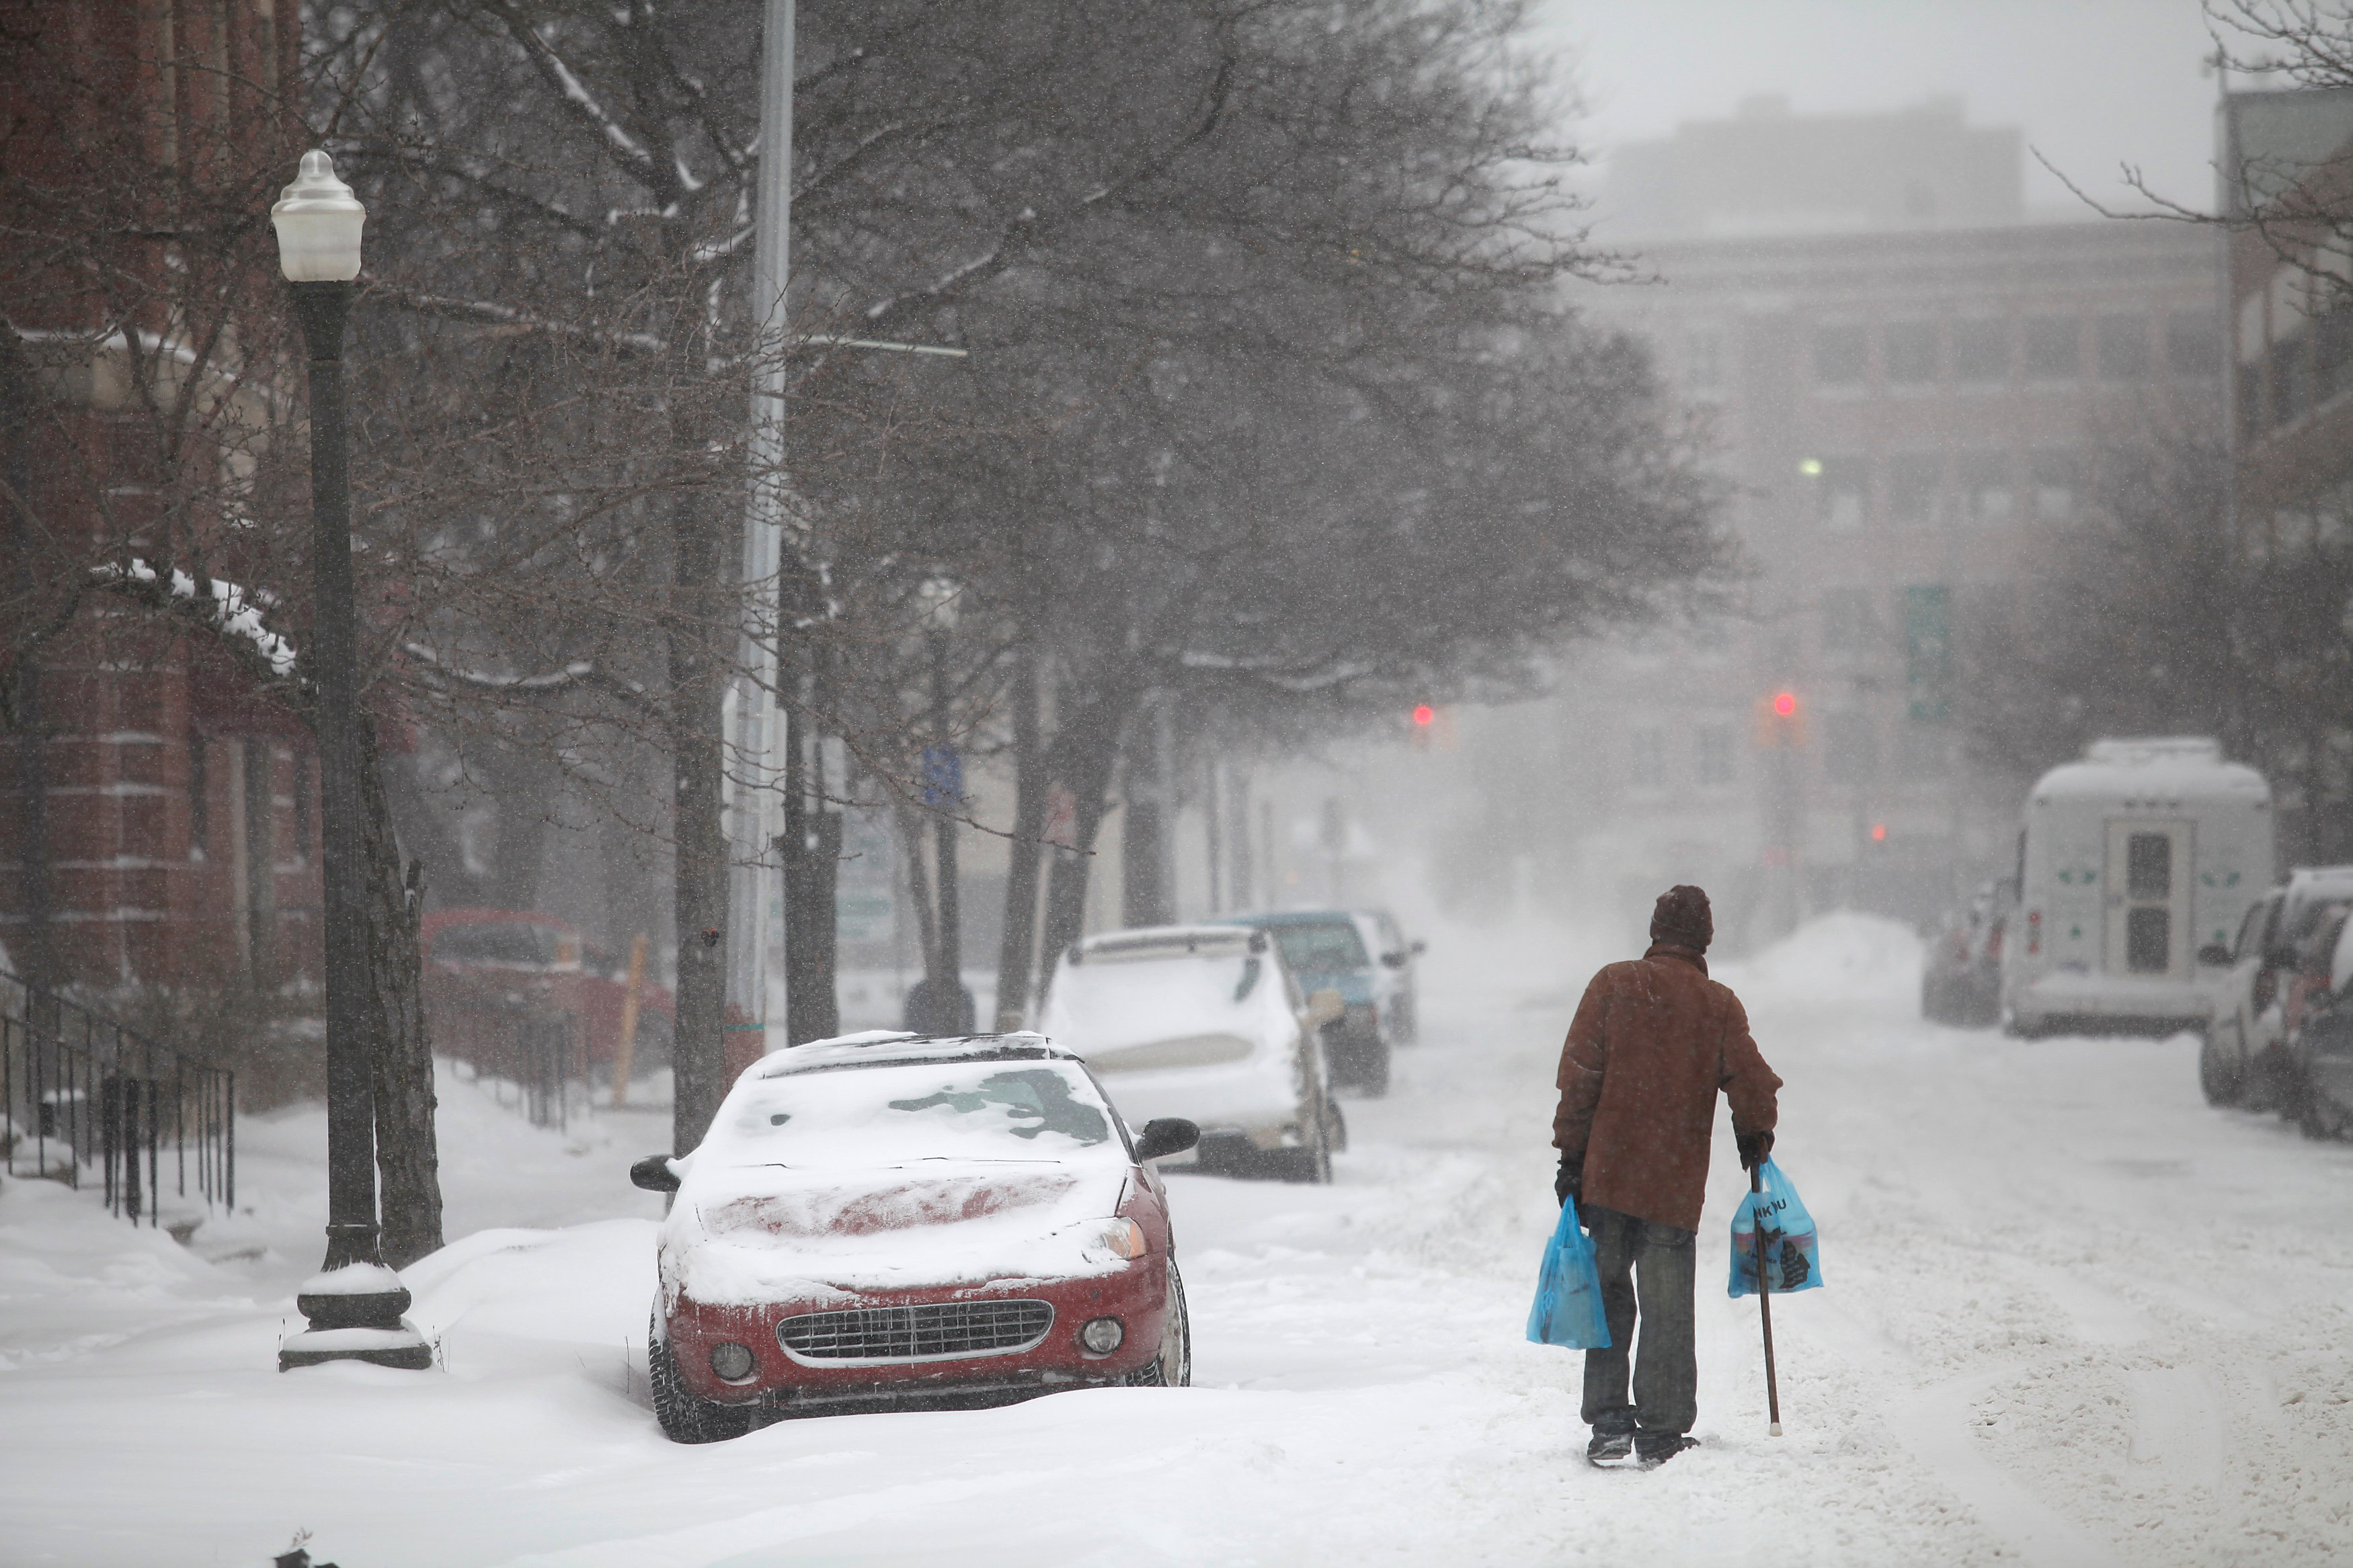 A man uses his cane to navigate a snow covered road in Detroit